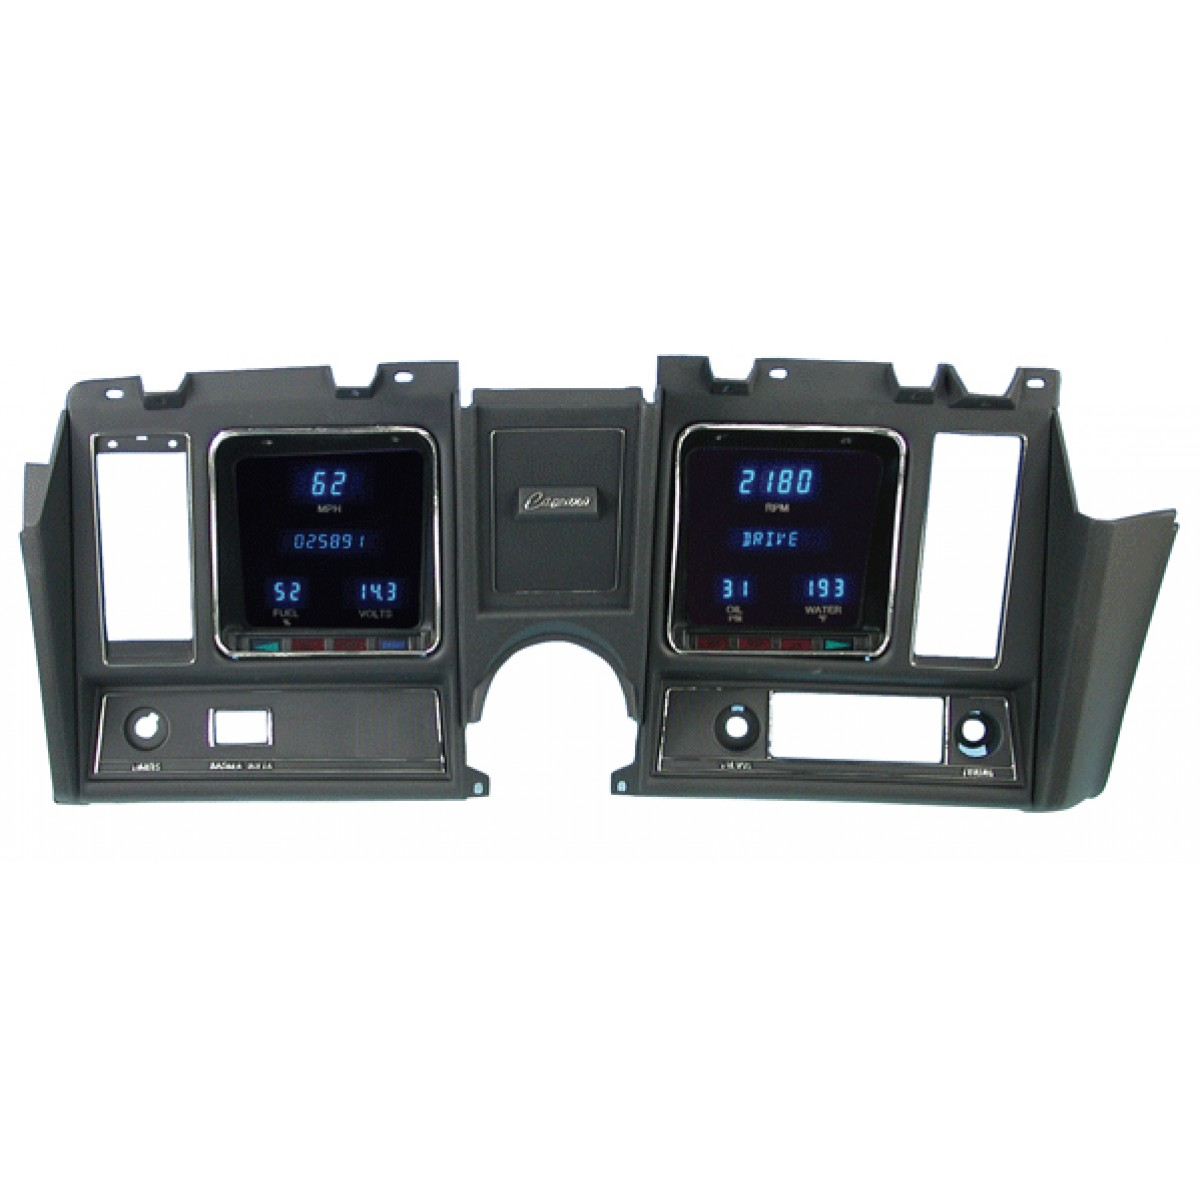 1969 Camaro Digital Instrument Cluster - Dakota Digital VFD3-69C-CAM